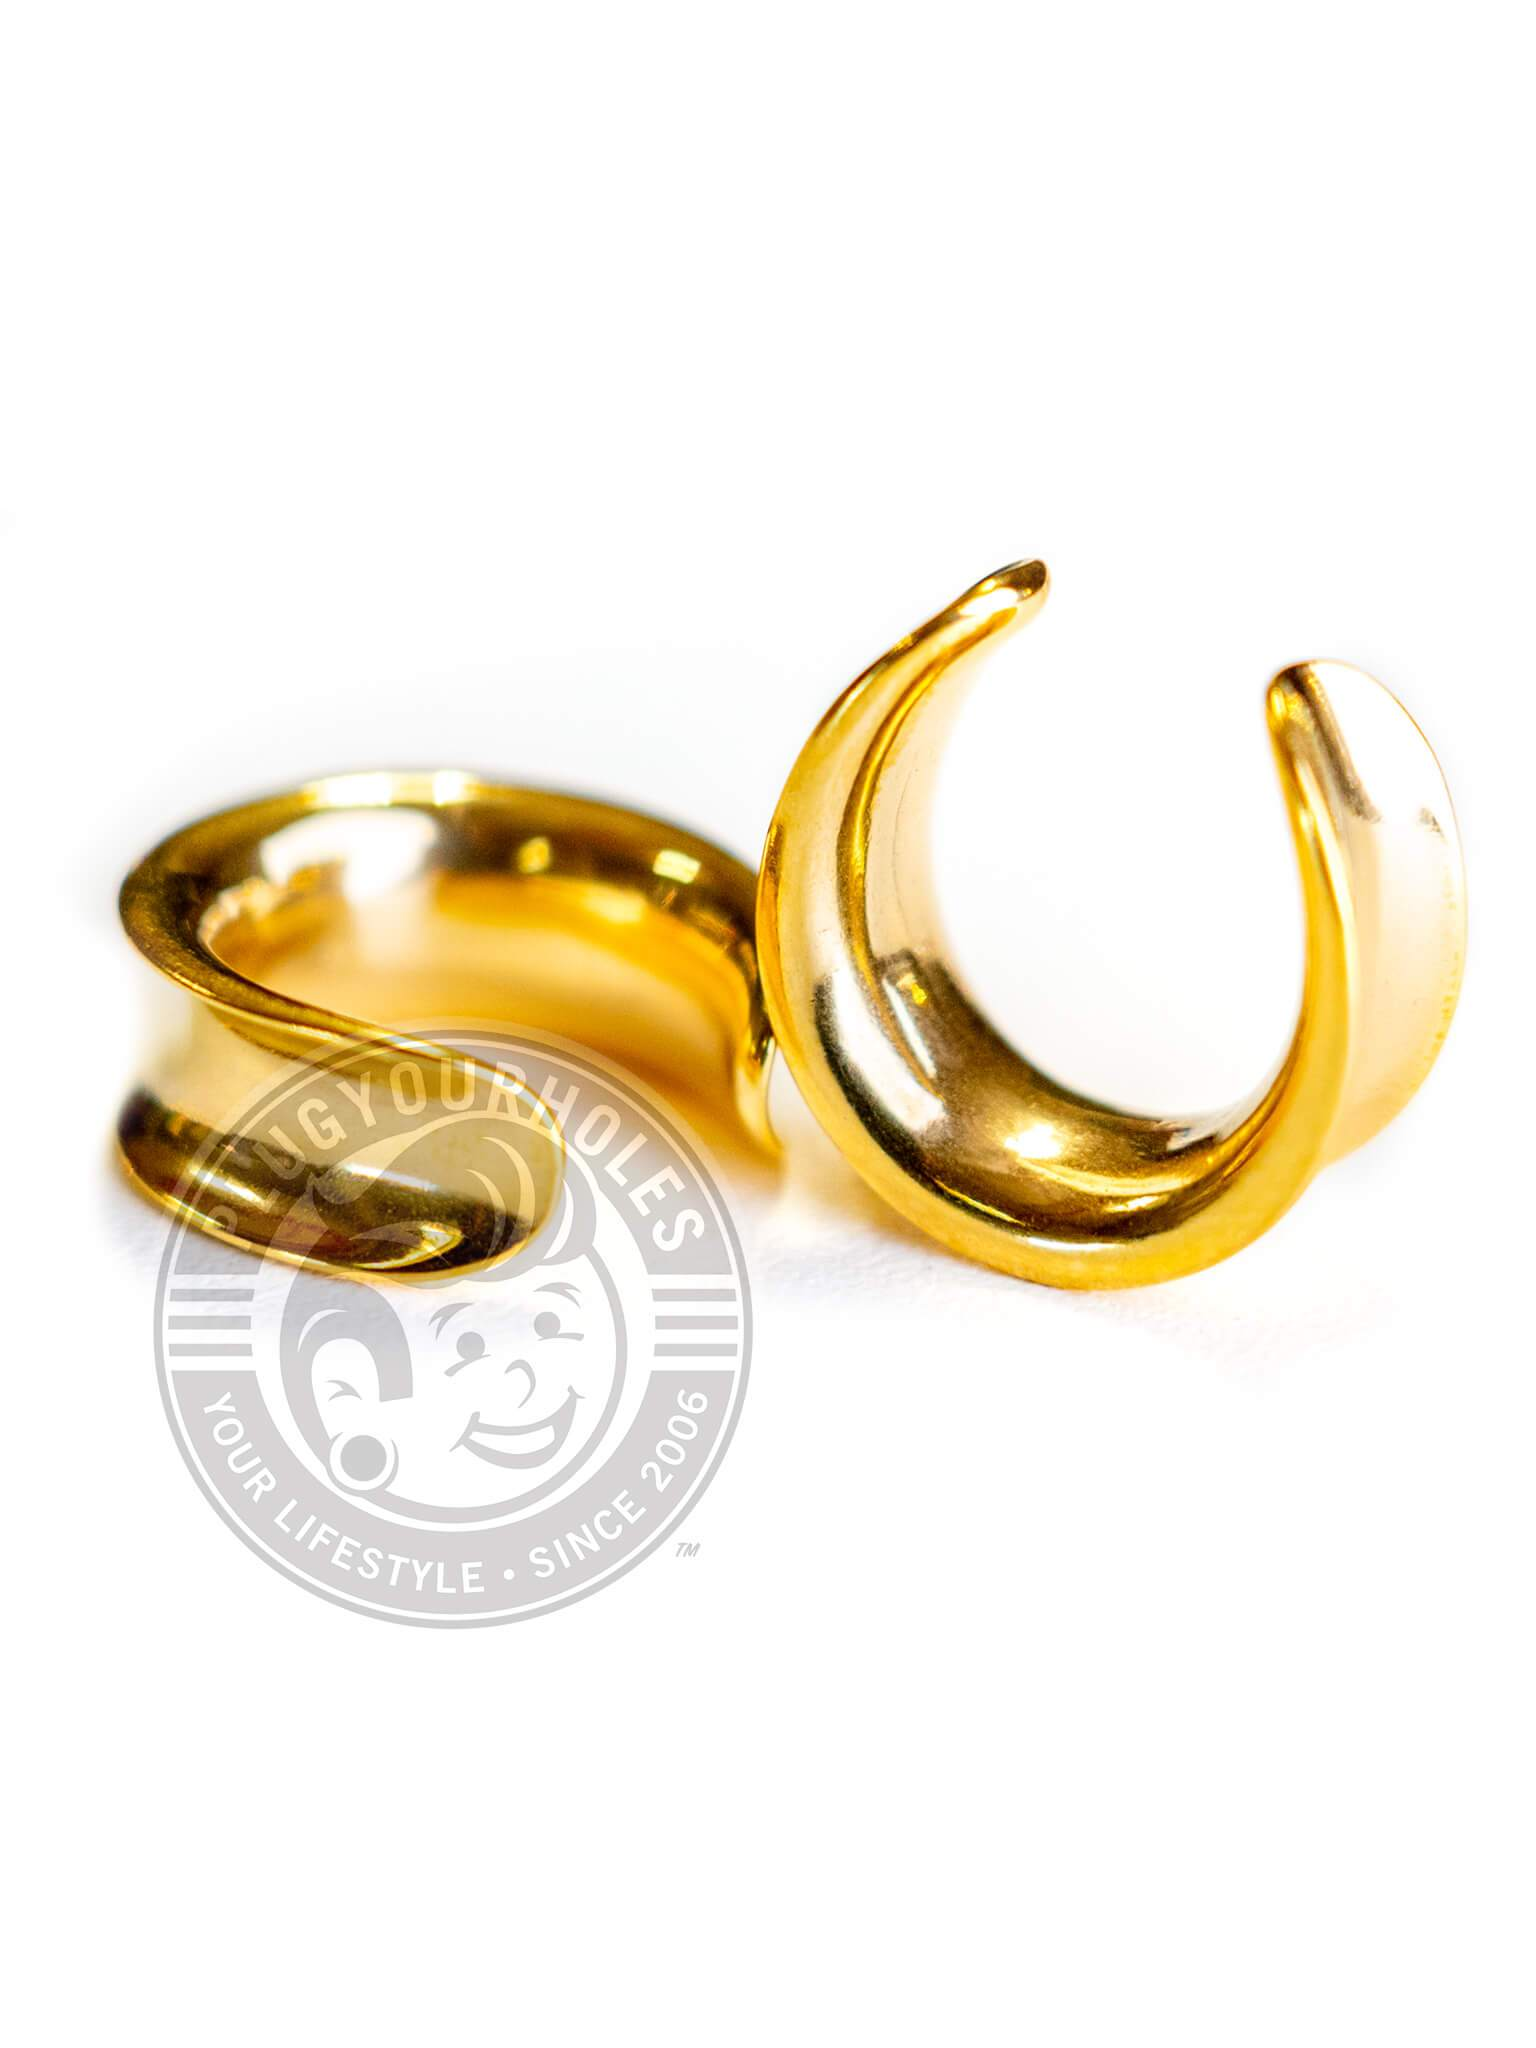 Gold Crescent Steel Saddles